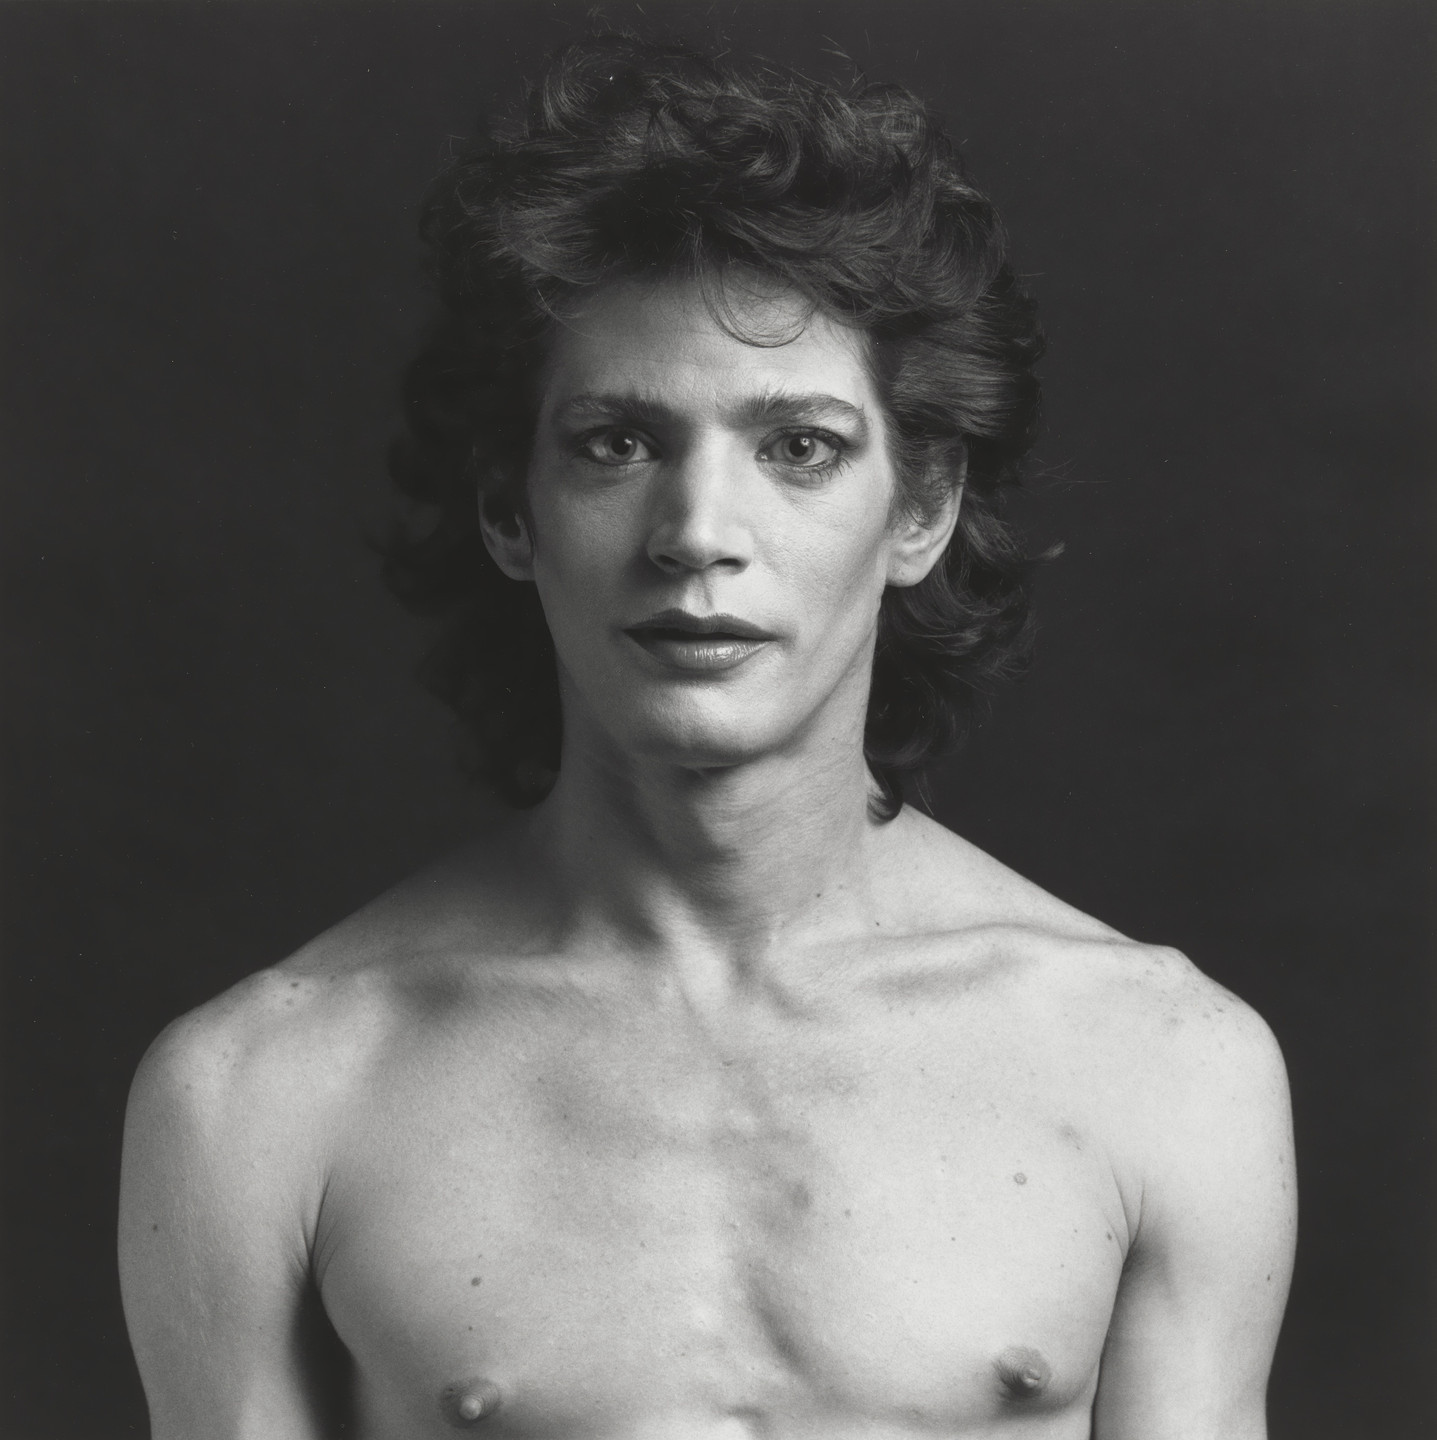 Robert Mapplethorpe. Self-Portrait. 1980